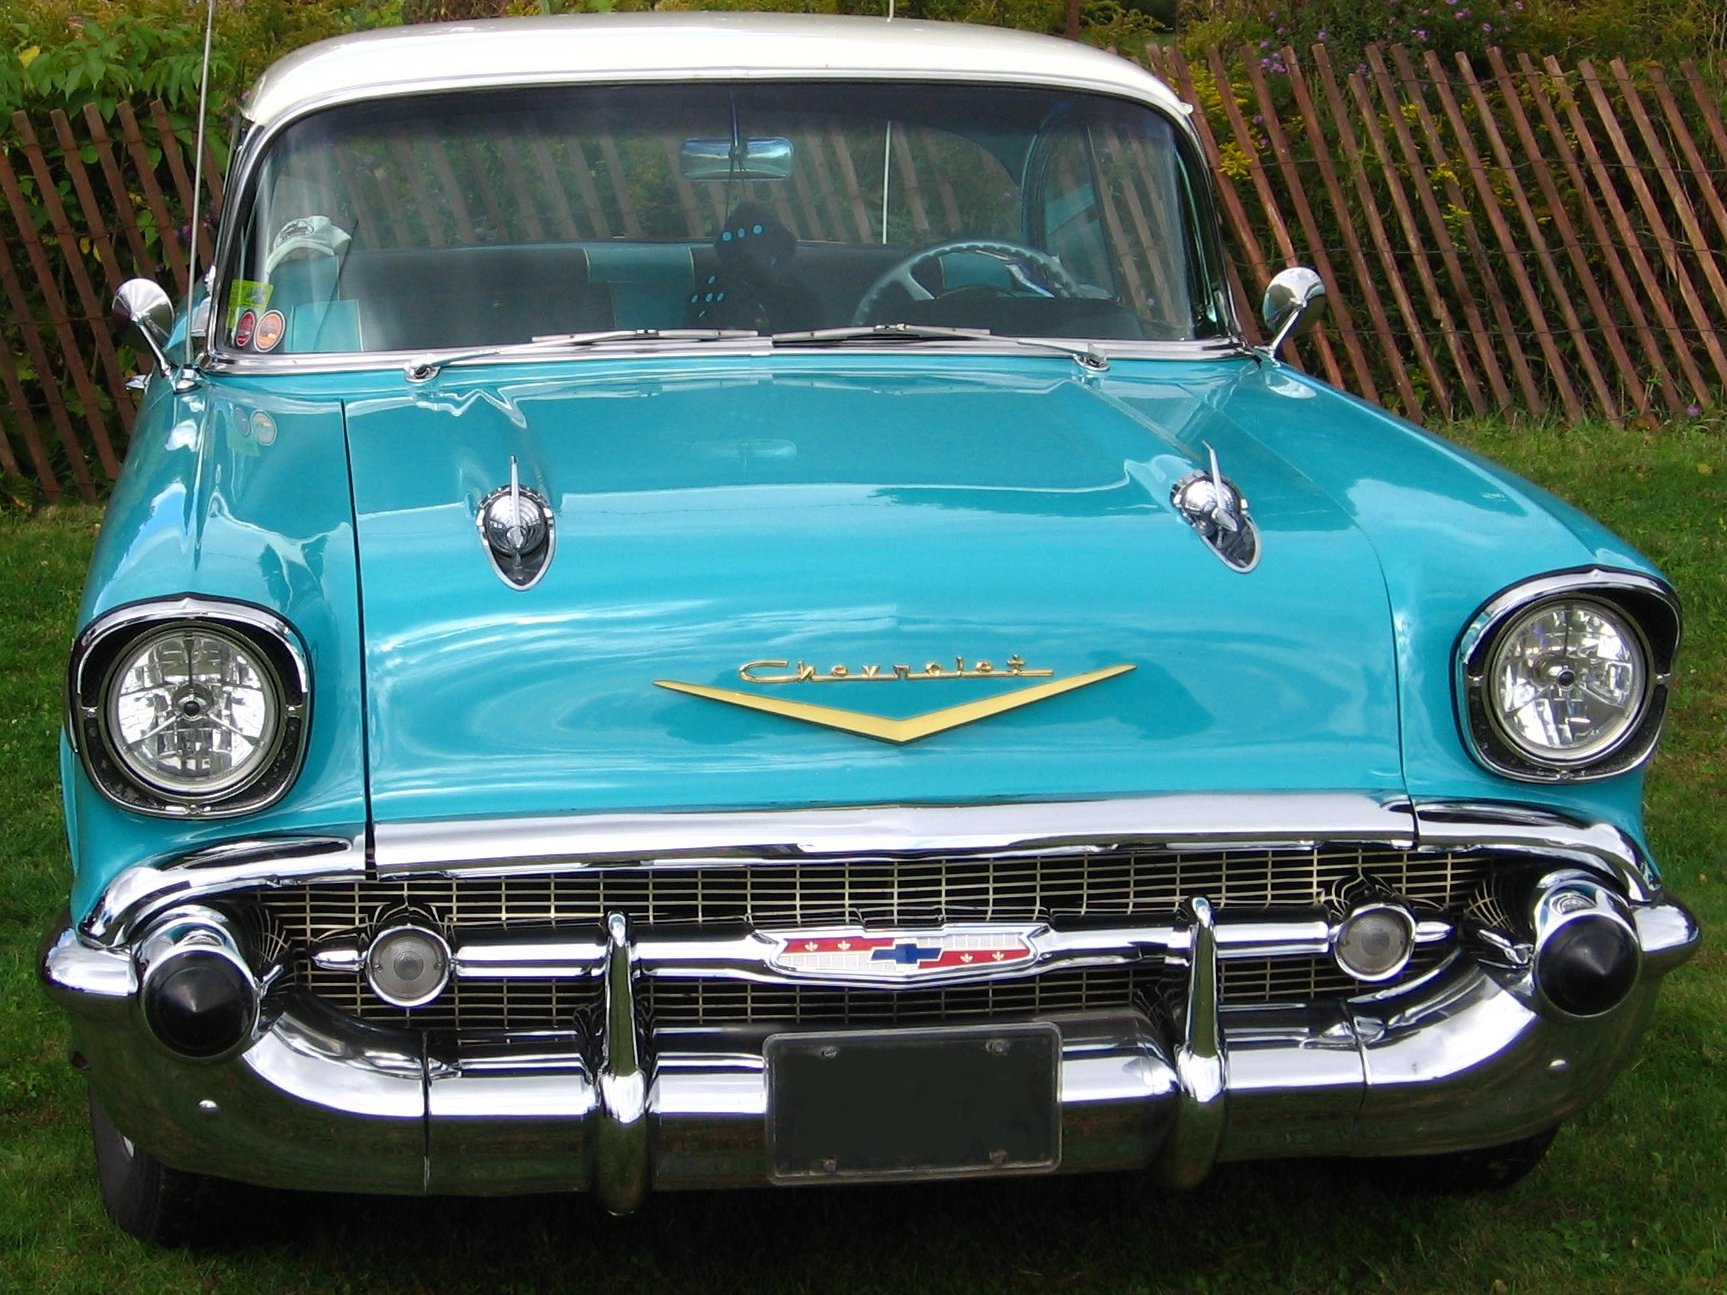 56 Chevrolet Belair For Sale 56 Chevrolet Bel Air Is The